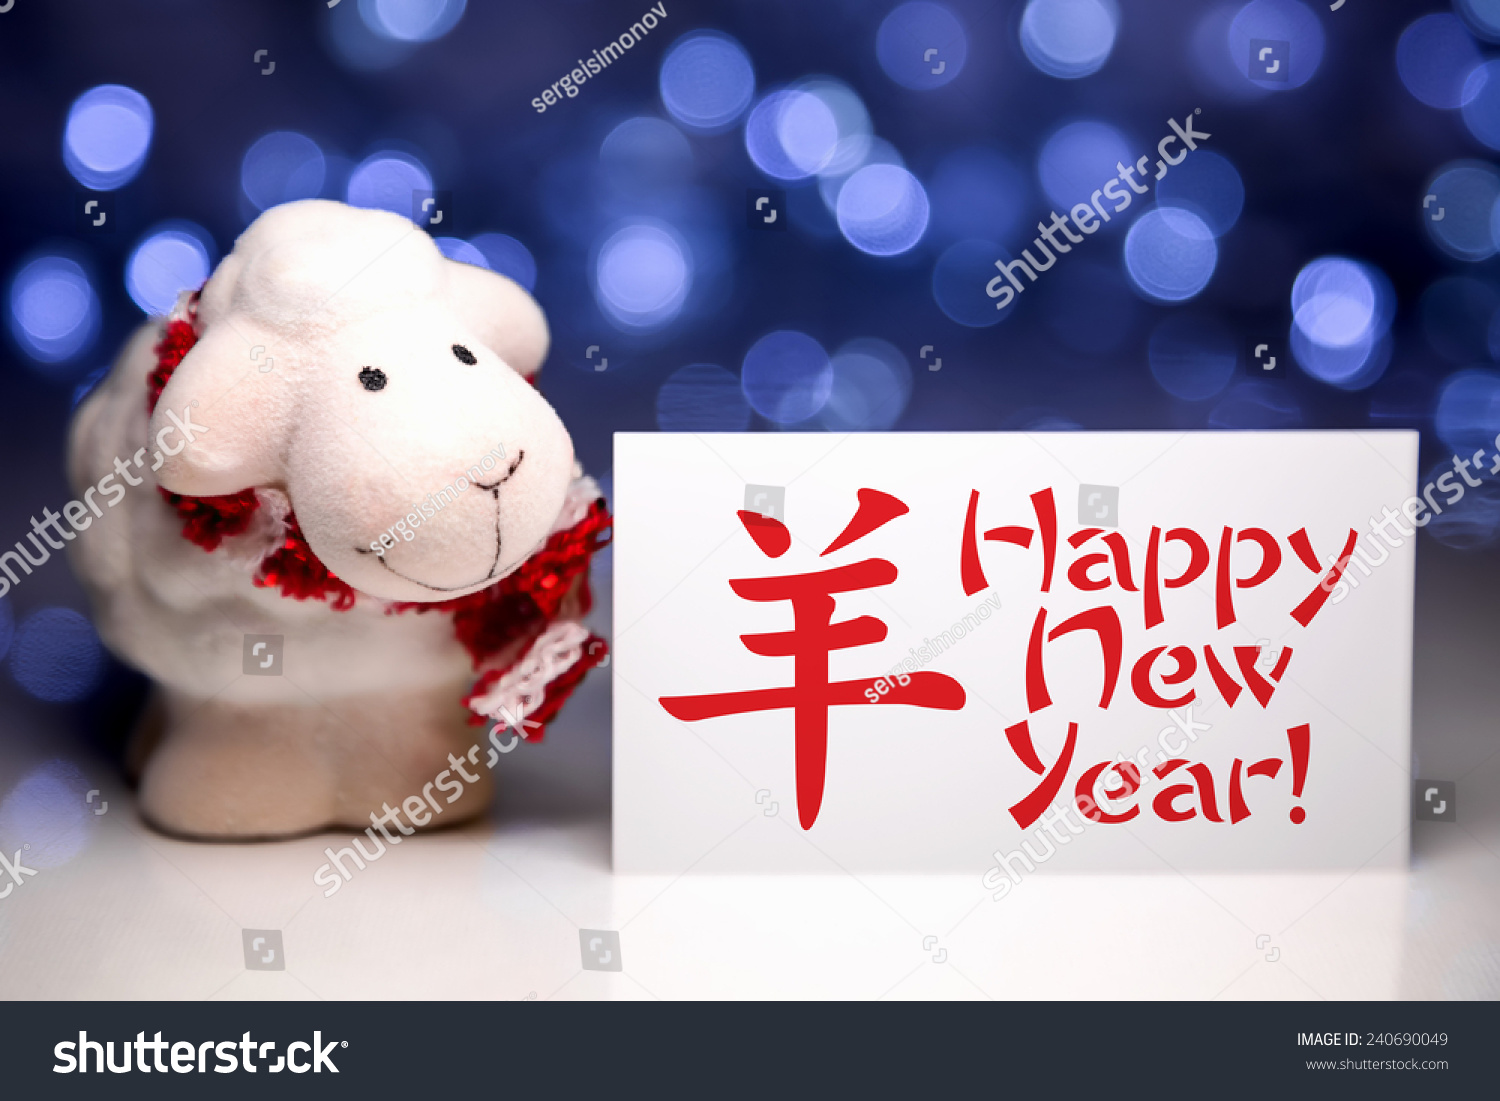 New year greeting card white sheep stock photo 240690049 new year greeting card with white sheep toy the chinese symbol of 2015 year on blurred kristyandbryce Image collections